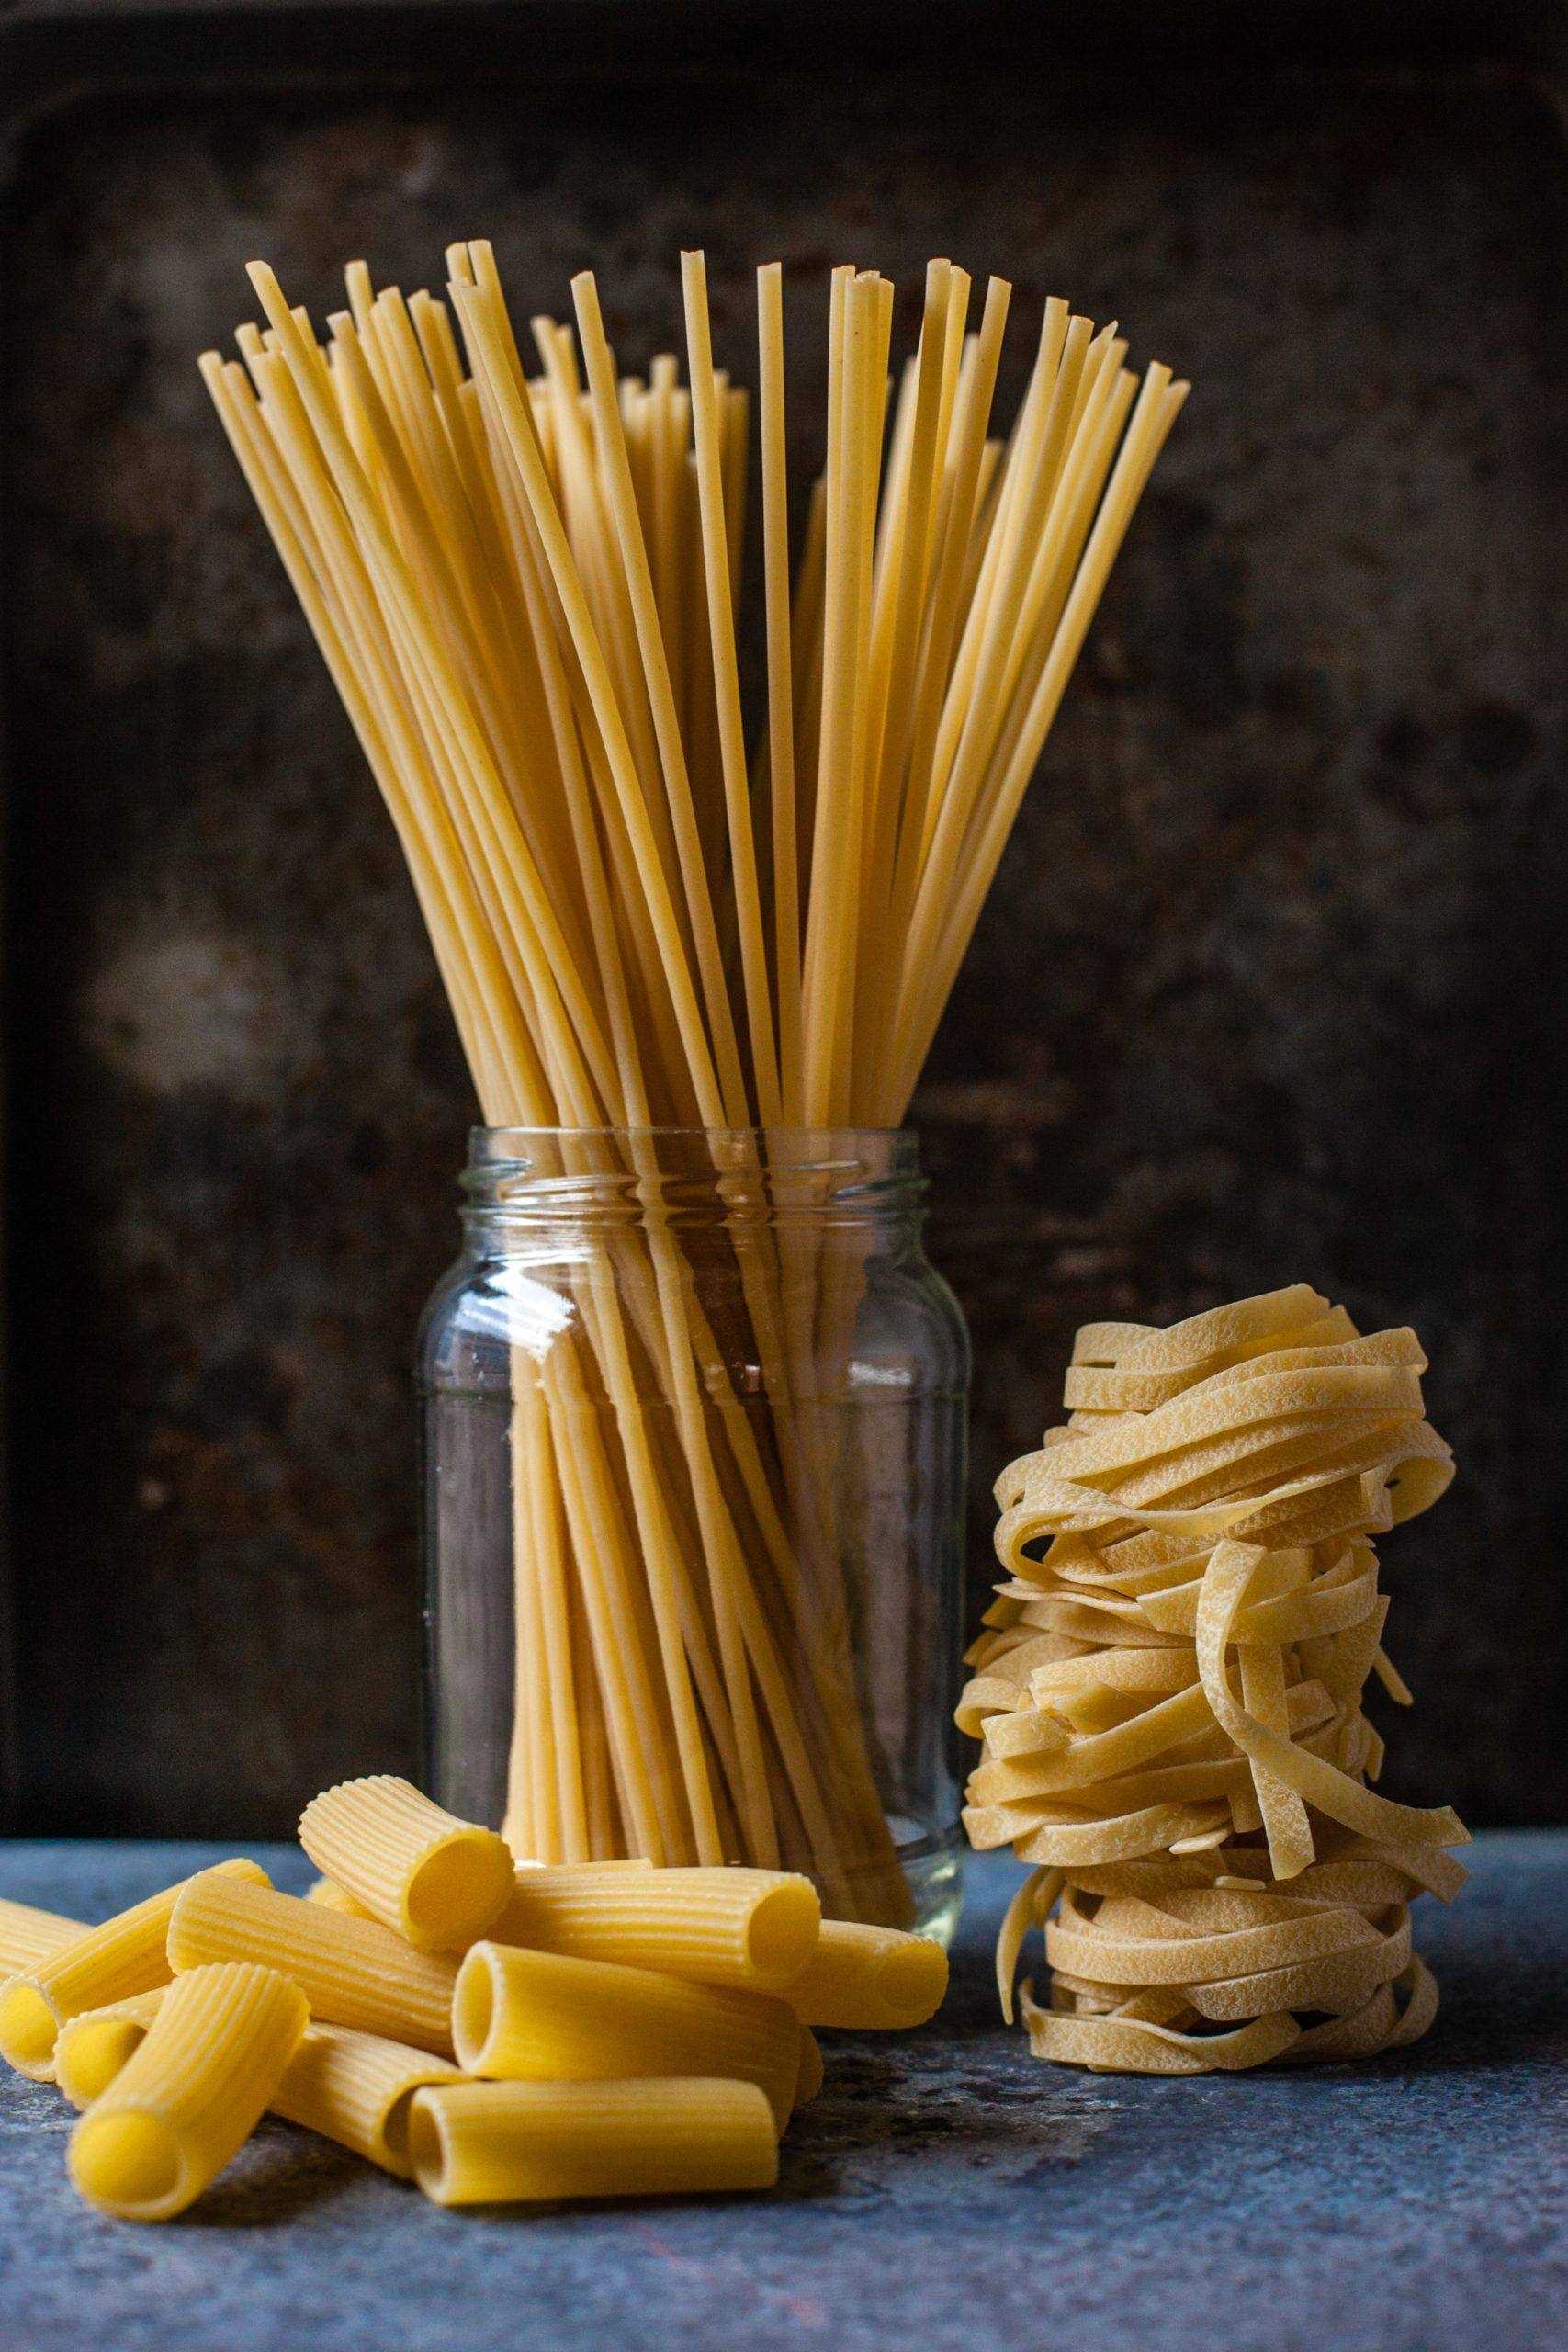 Easy Pasta Cooking Rules For the Beginner